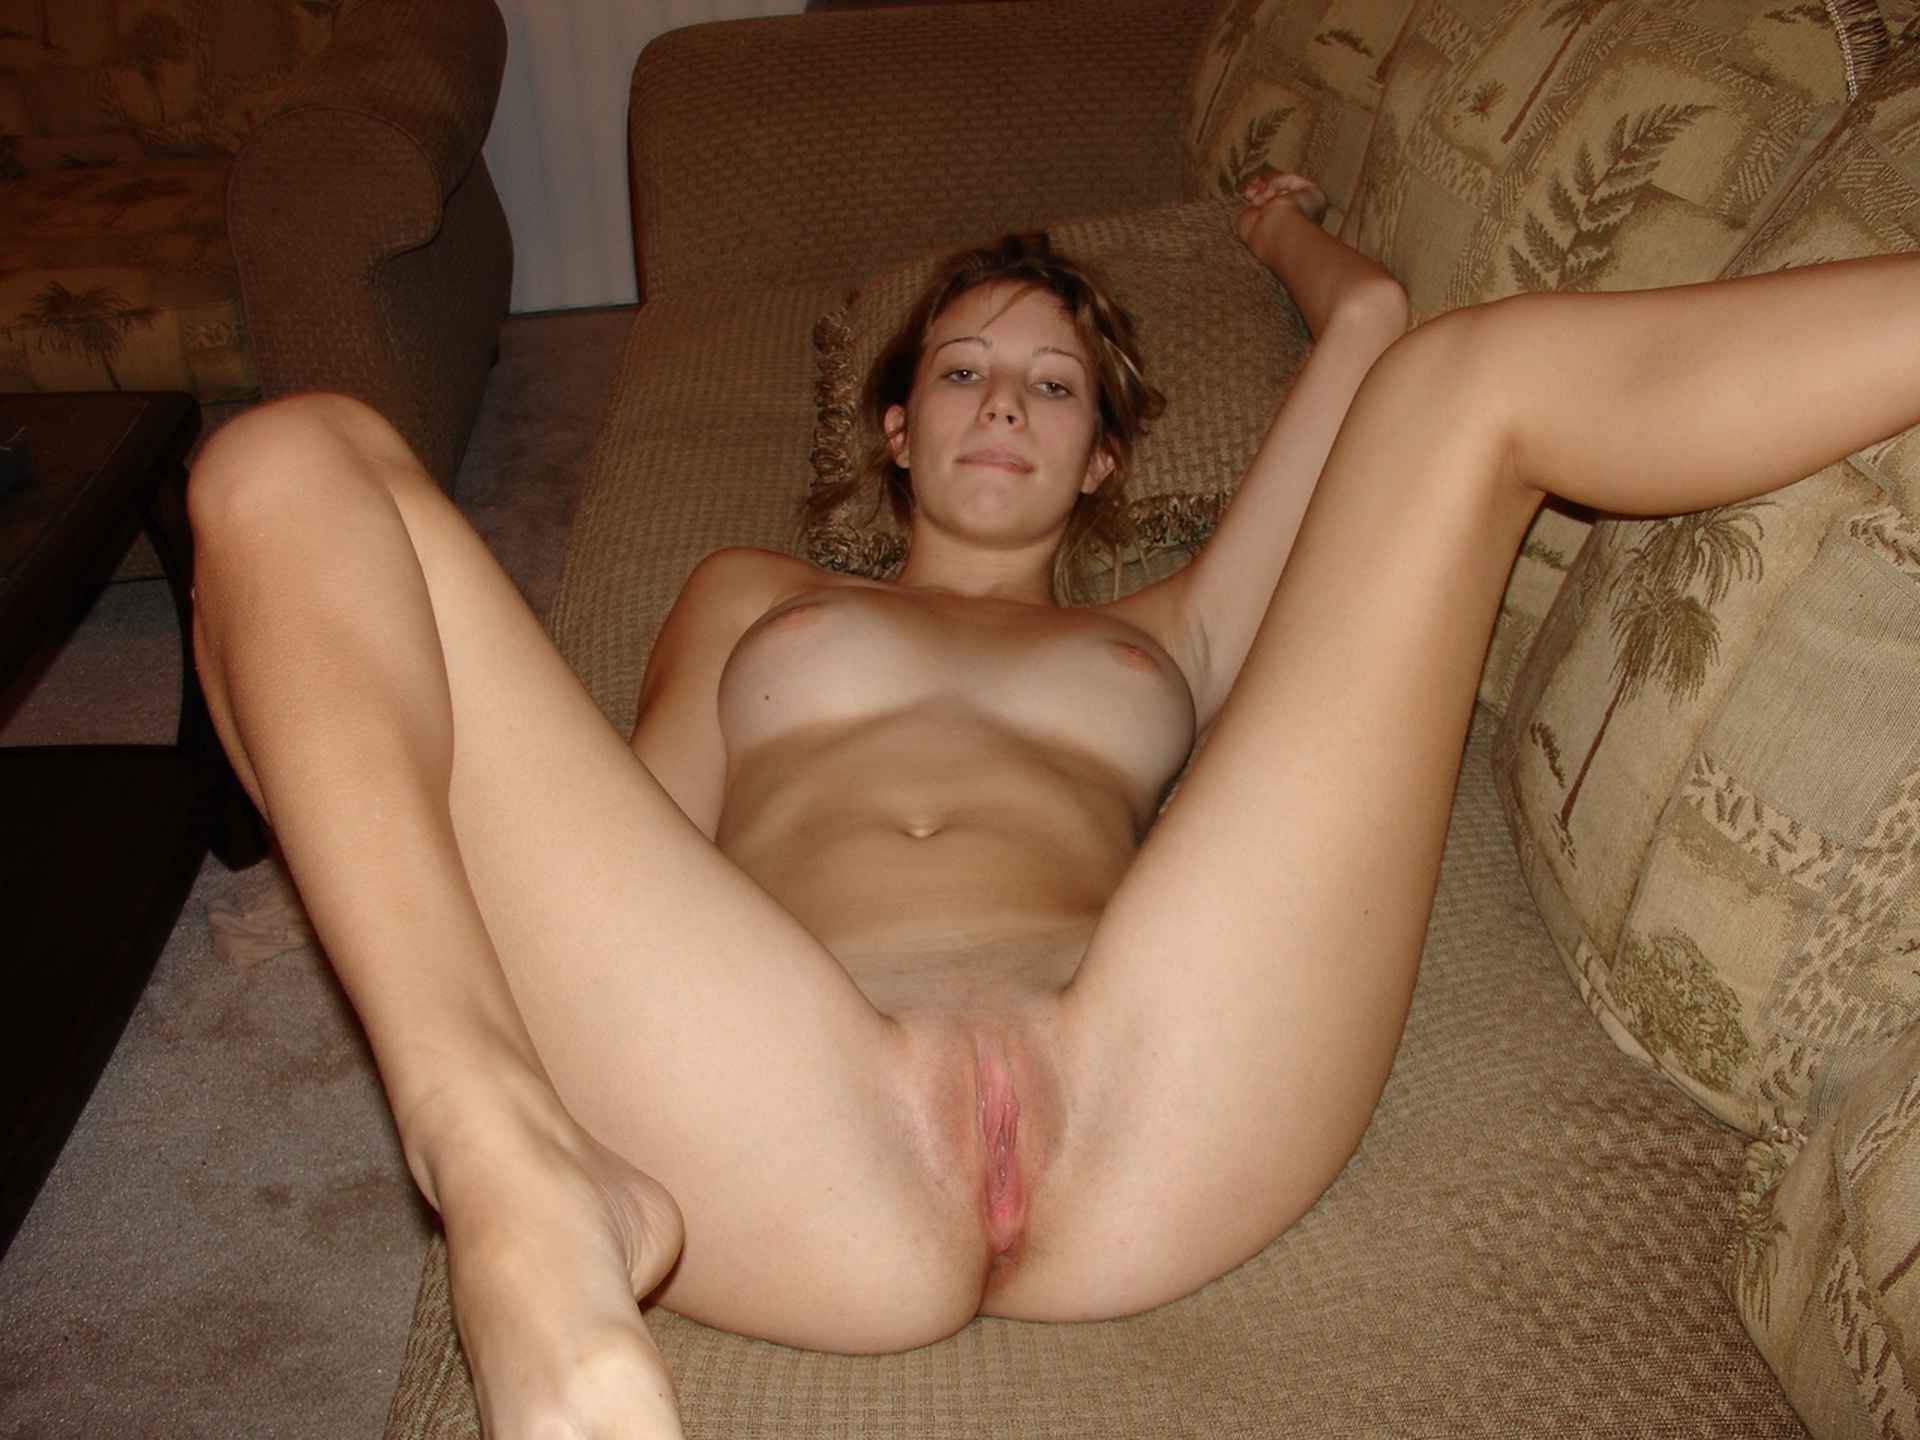 nude-young-amateur-girl-on-the-sofa-16